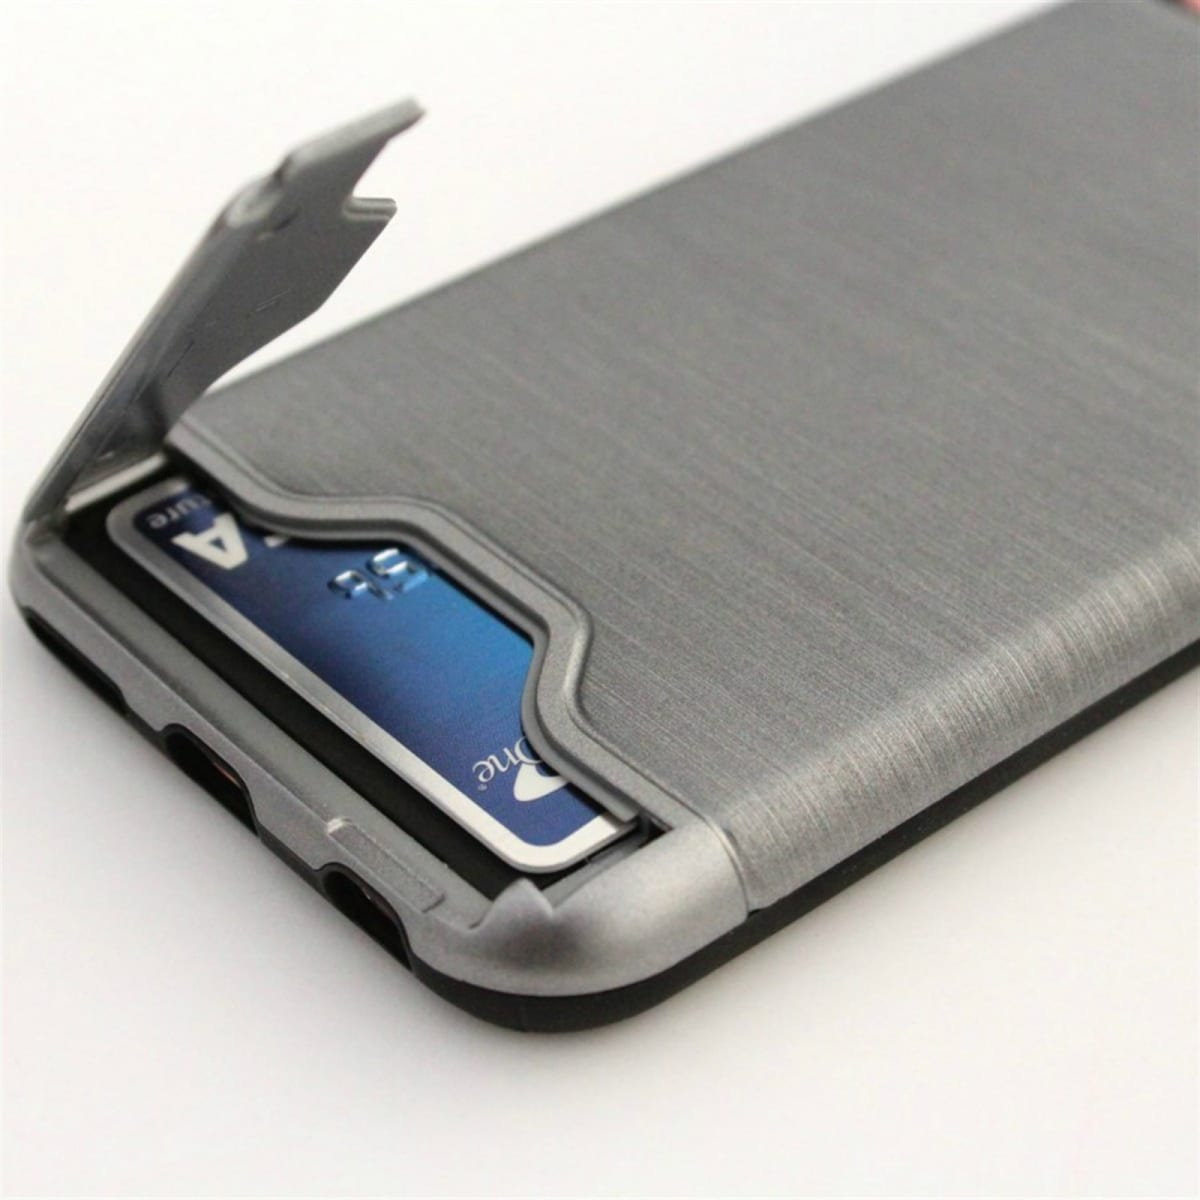 Cash/Card Hideaway iPhone Case